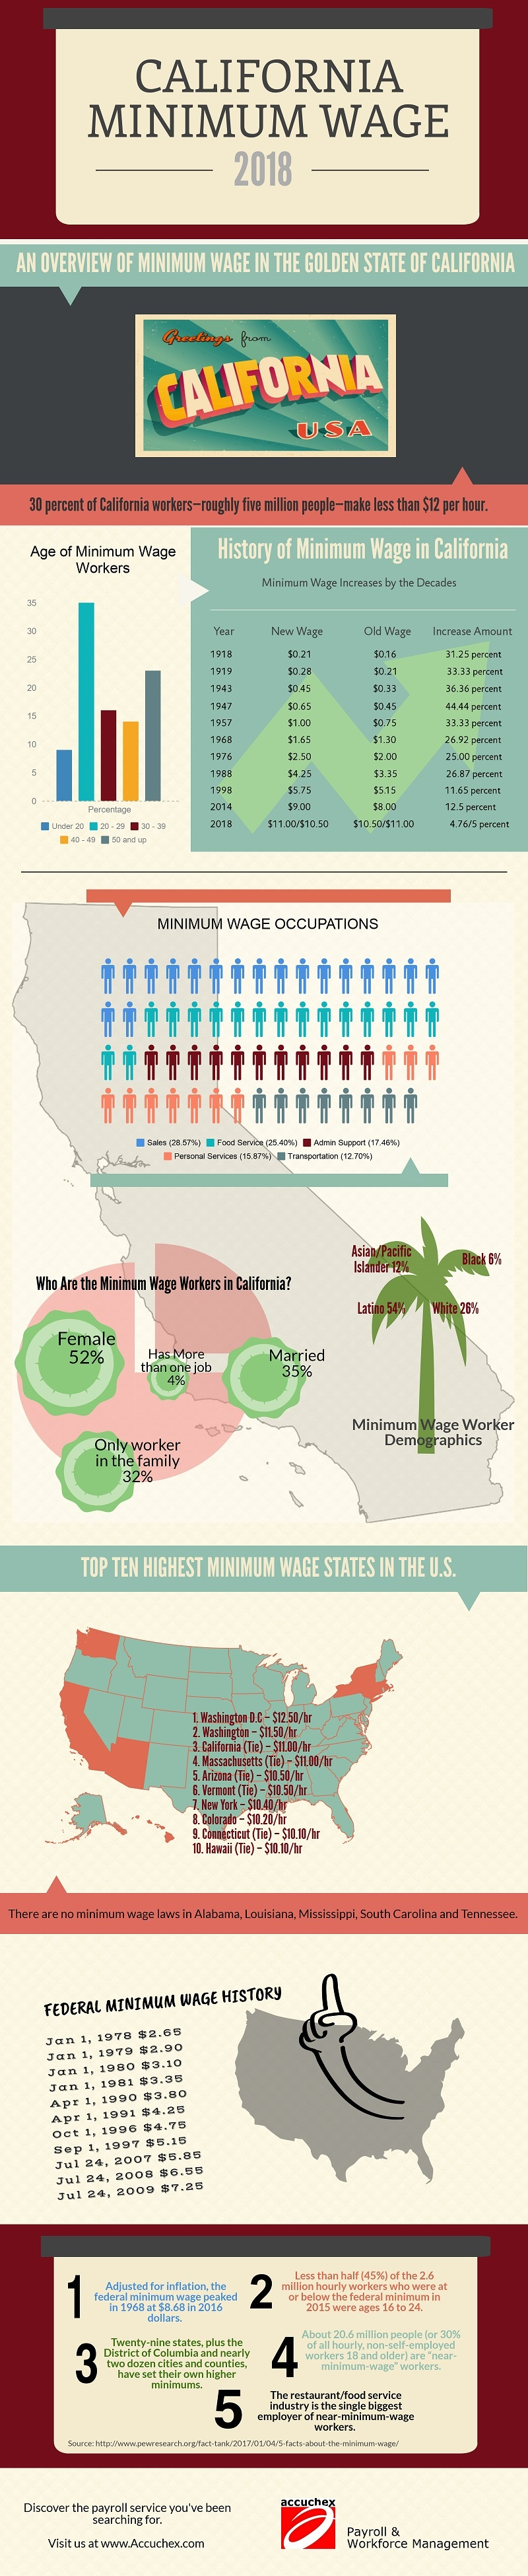 California Minimum Wage | Labor Laws CA